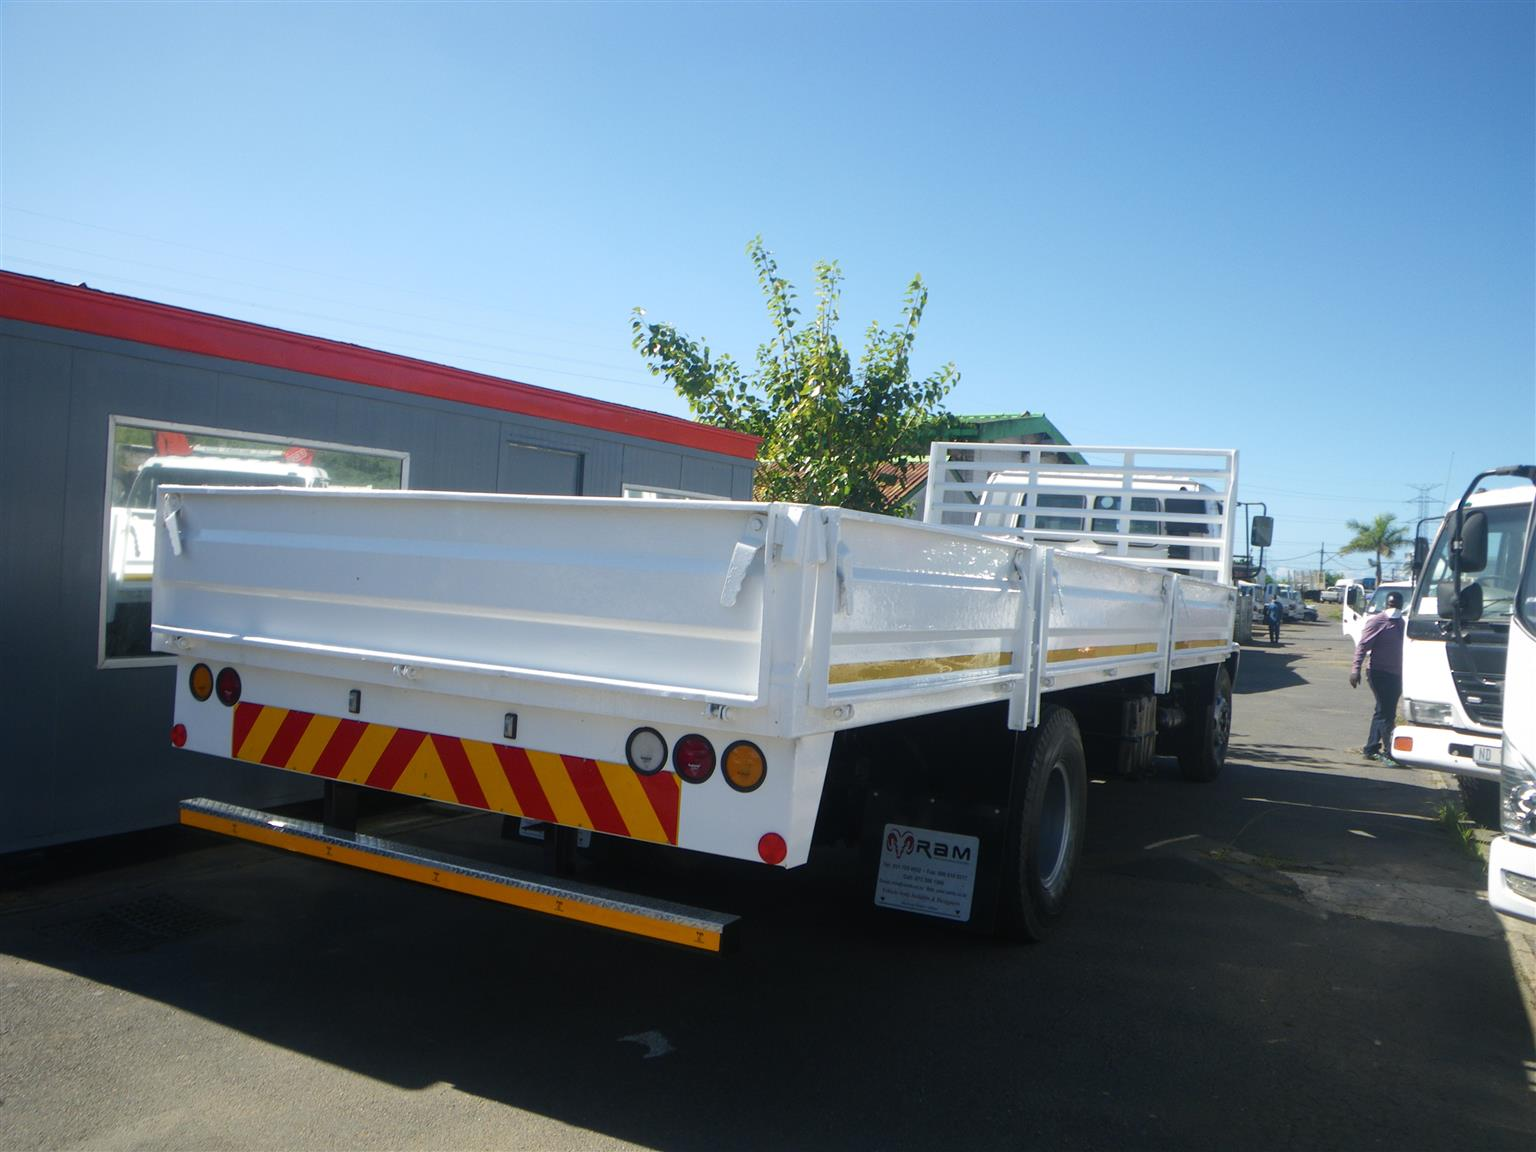 1989 Isuzu F9000 drop side truck